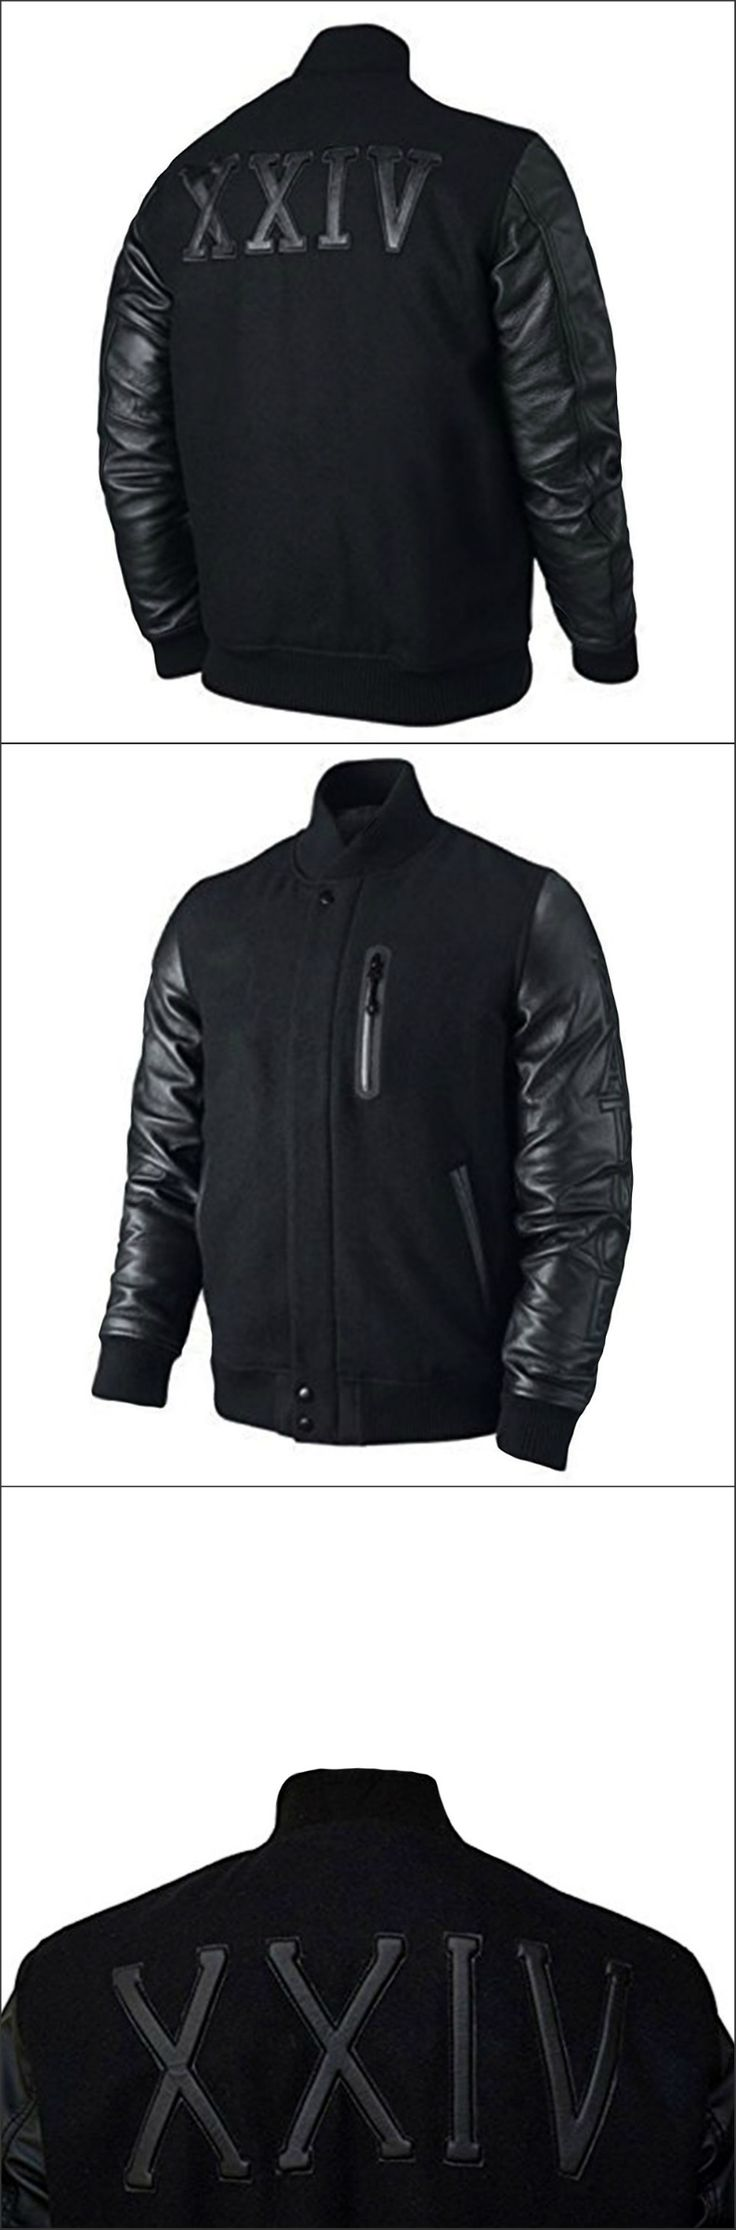 Zaan leathers Offers Kobe Destroyer XXIV Battle Letterman Jacket for All Stylish Men and Boys a Perfect Sports and Casual Outfit Wear at Any Occassion. Made with Wool Fabric with Real Leather Sleeves. Available at Our Online Store in Reasonable Price.